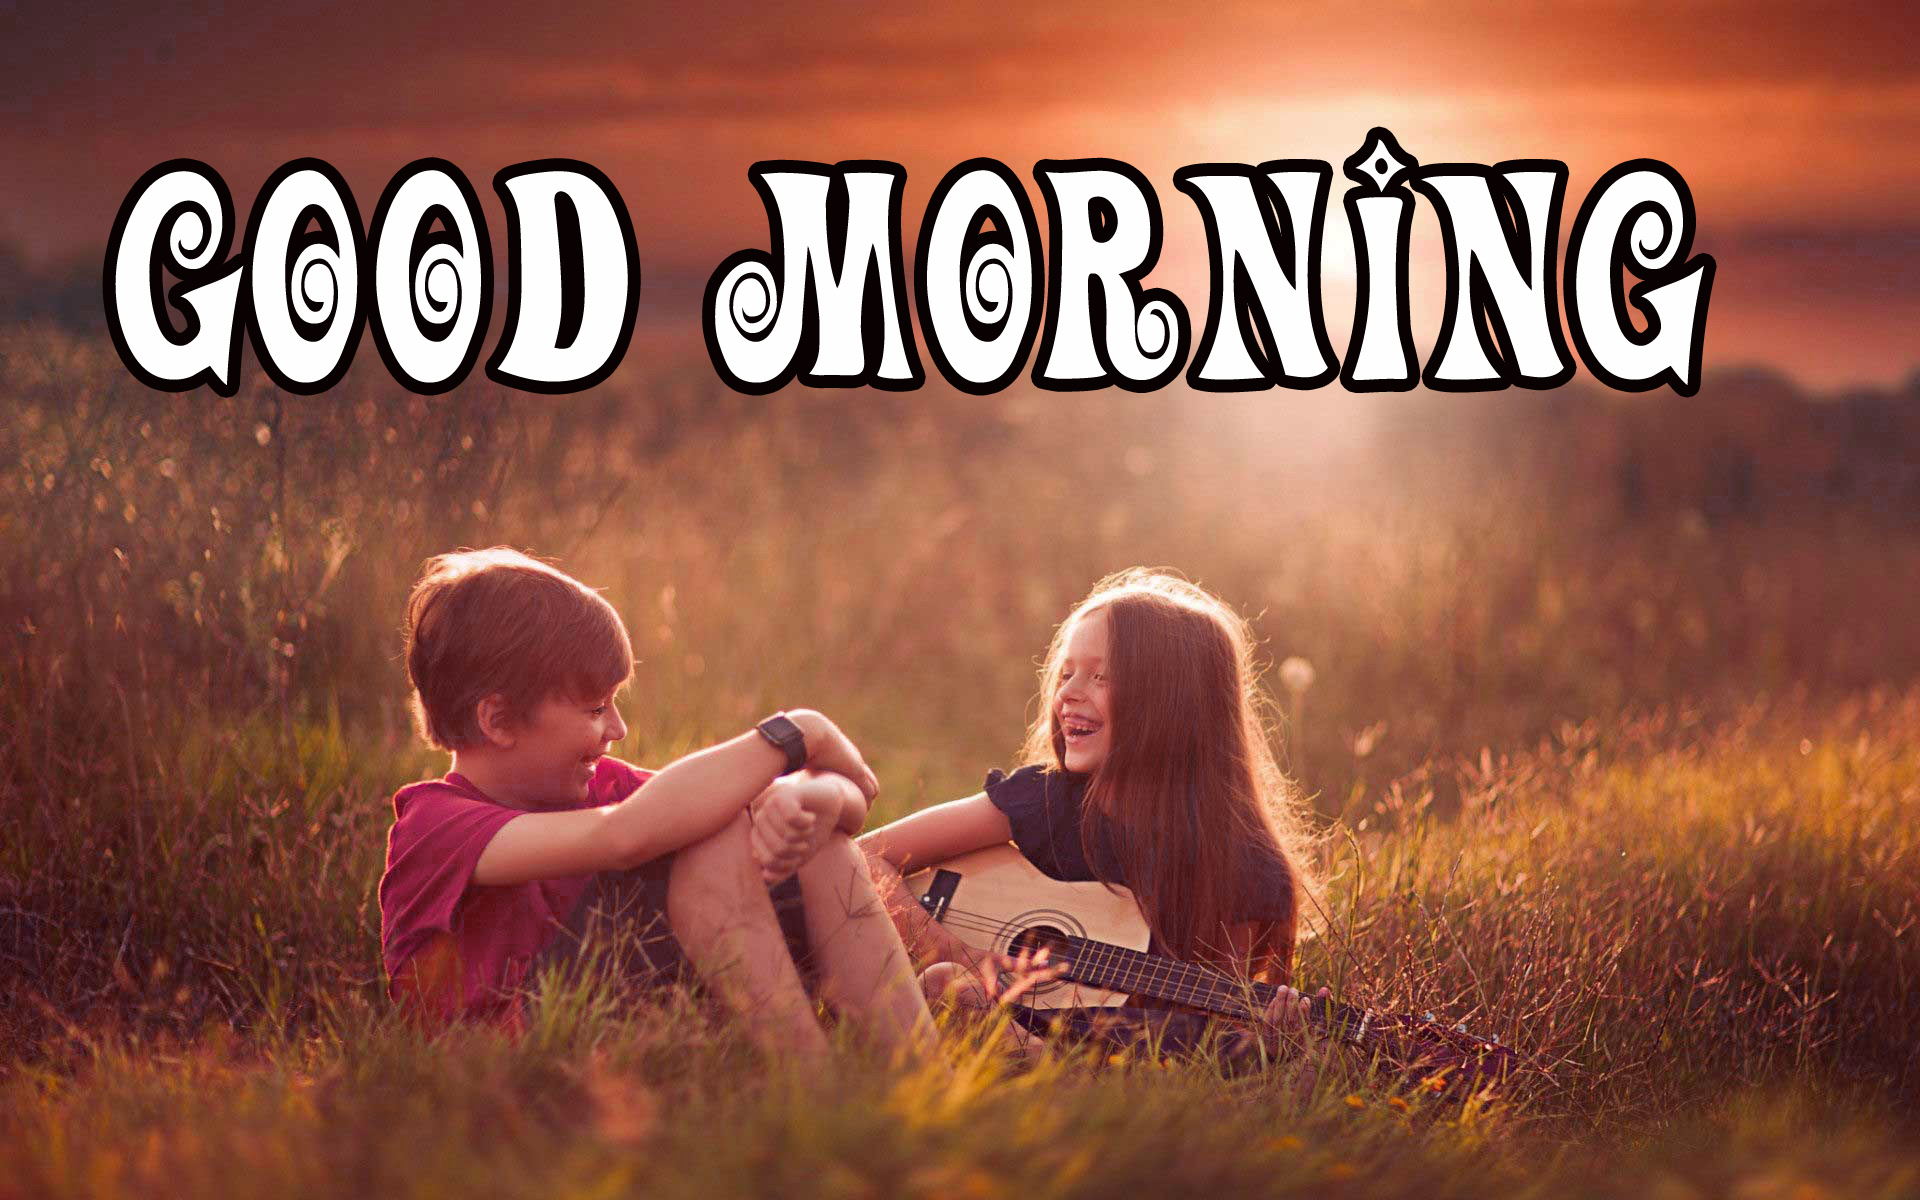 good morning Images for my best friend Images Wallpaper Download